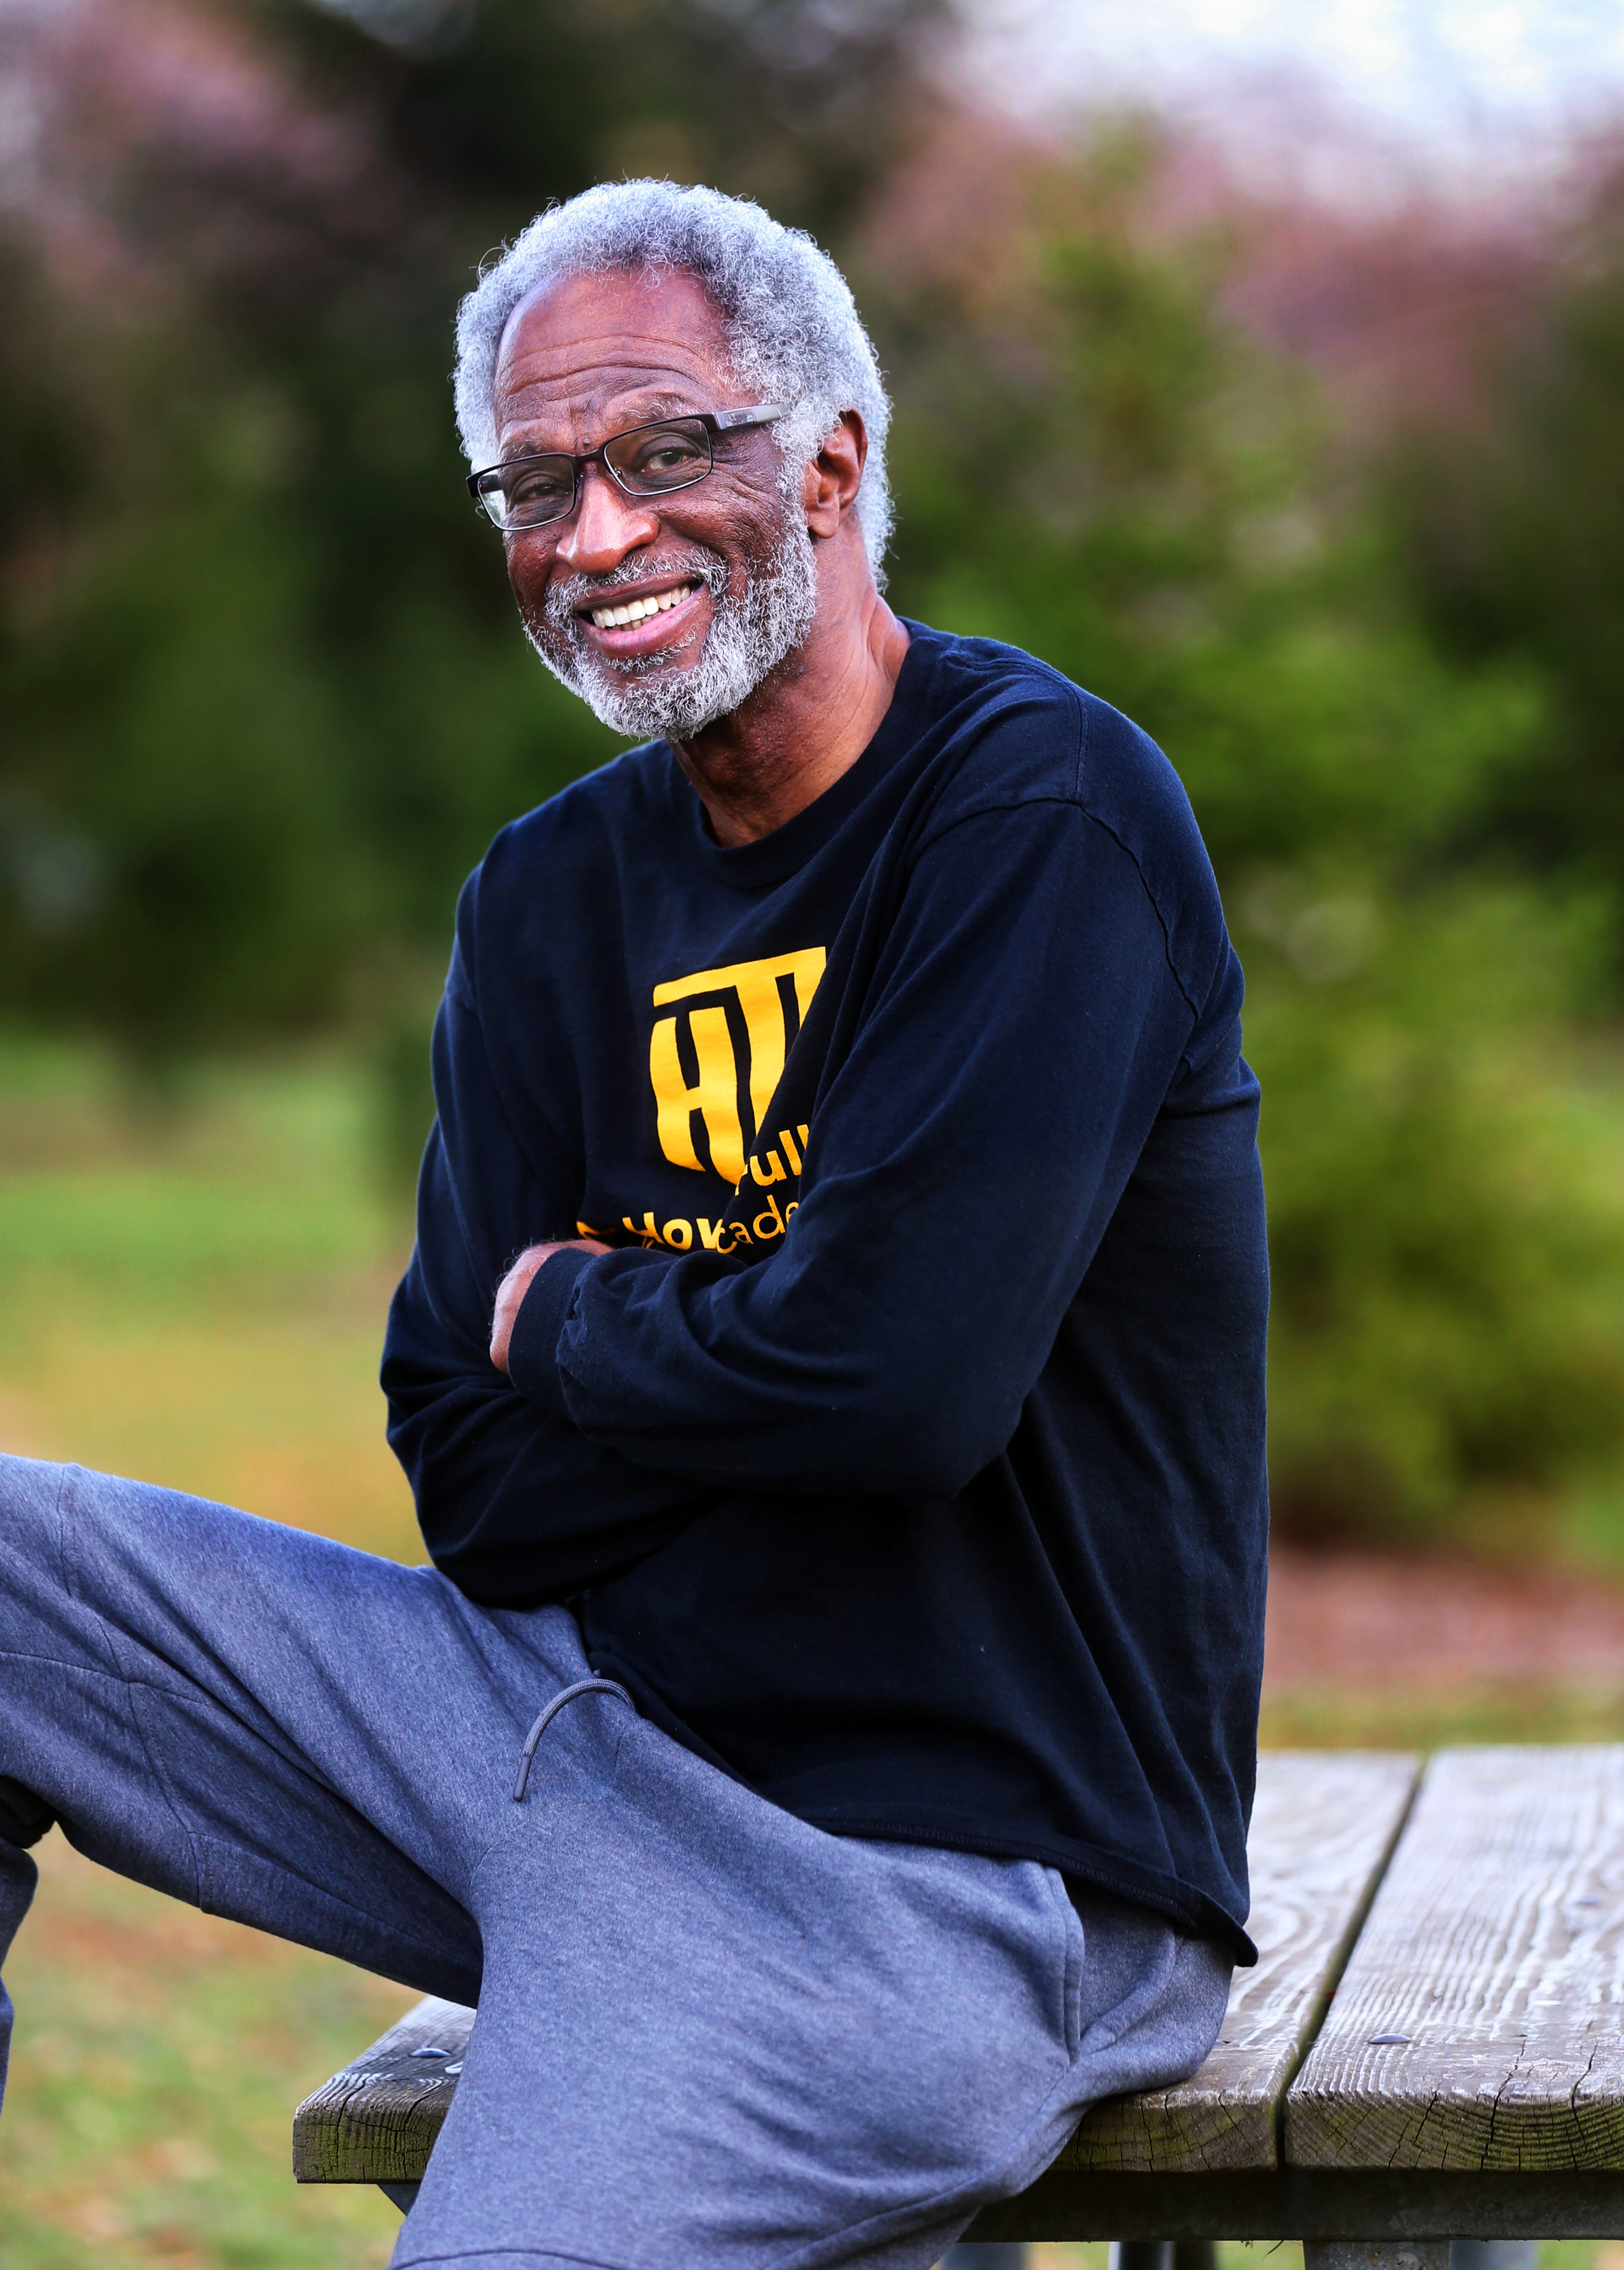 """Howard Fuller, lifelong education reform advocate and civil rights activist, says, """"You can't tutor a kid who doesn't know how to read. If they have reading skills, tutoring can help them. But kids who literally cannot read need more than just tutoring,"""" he said."""